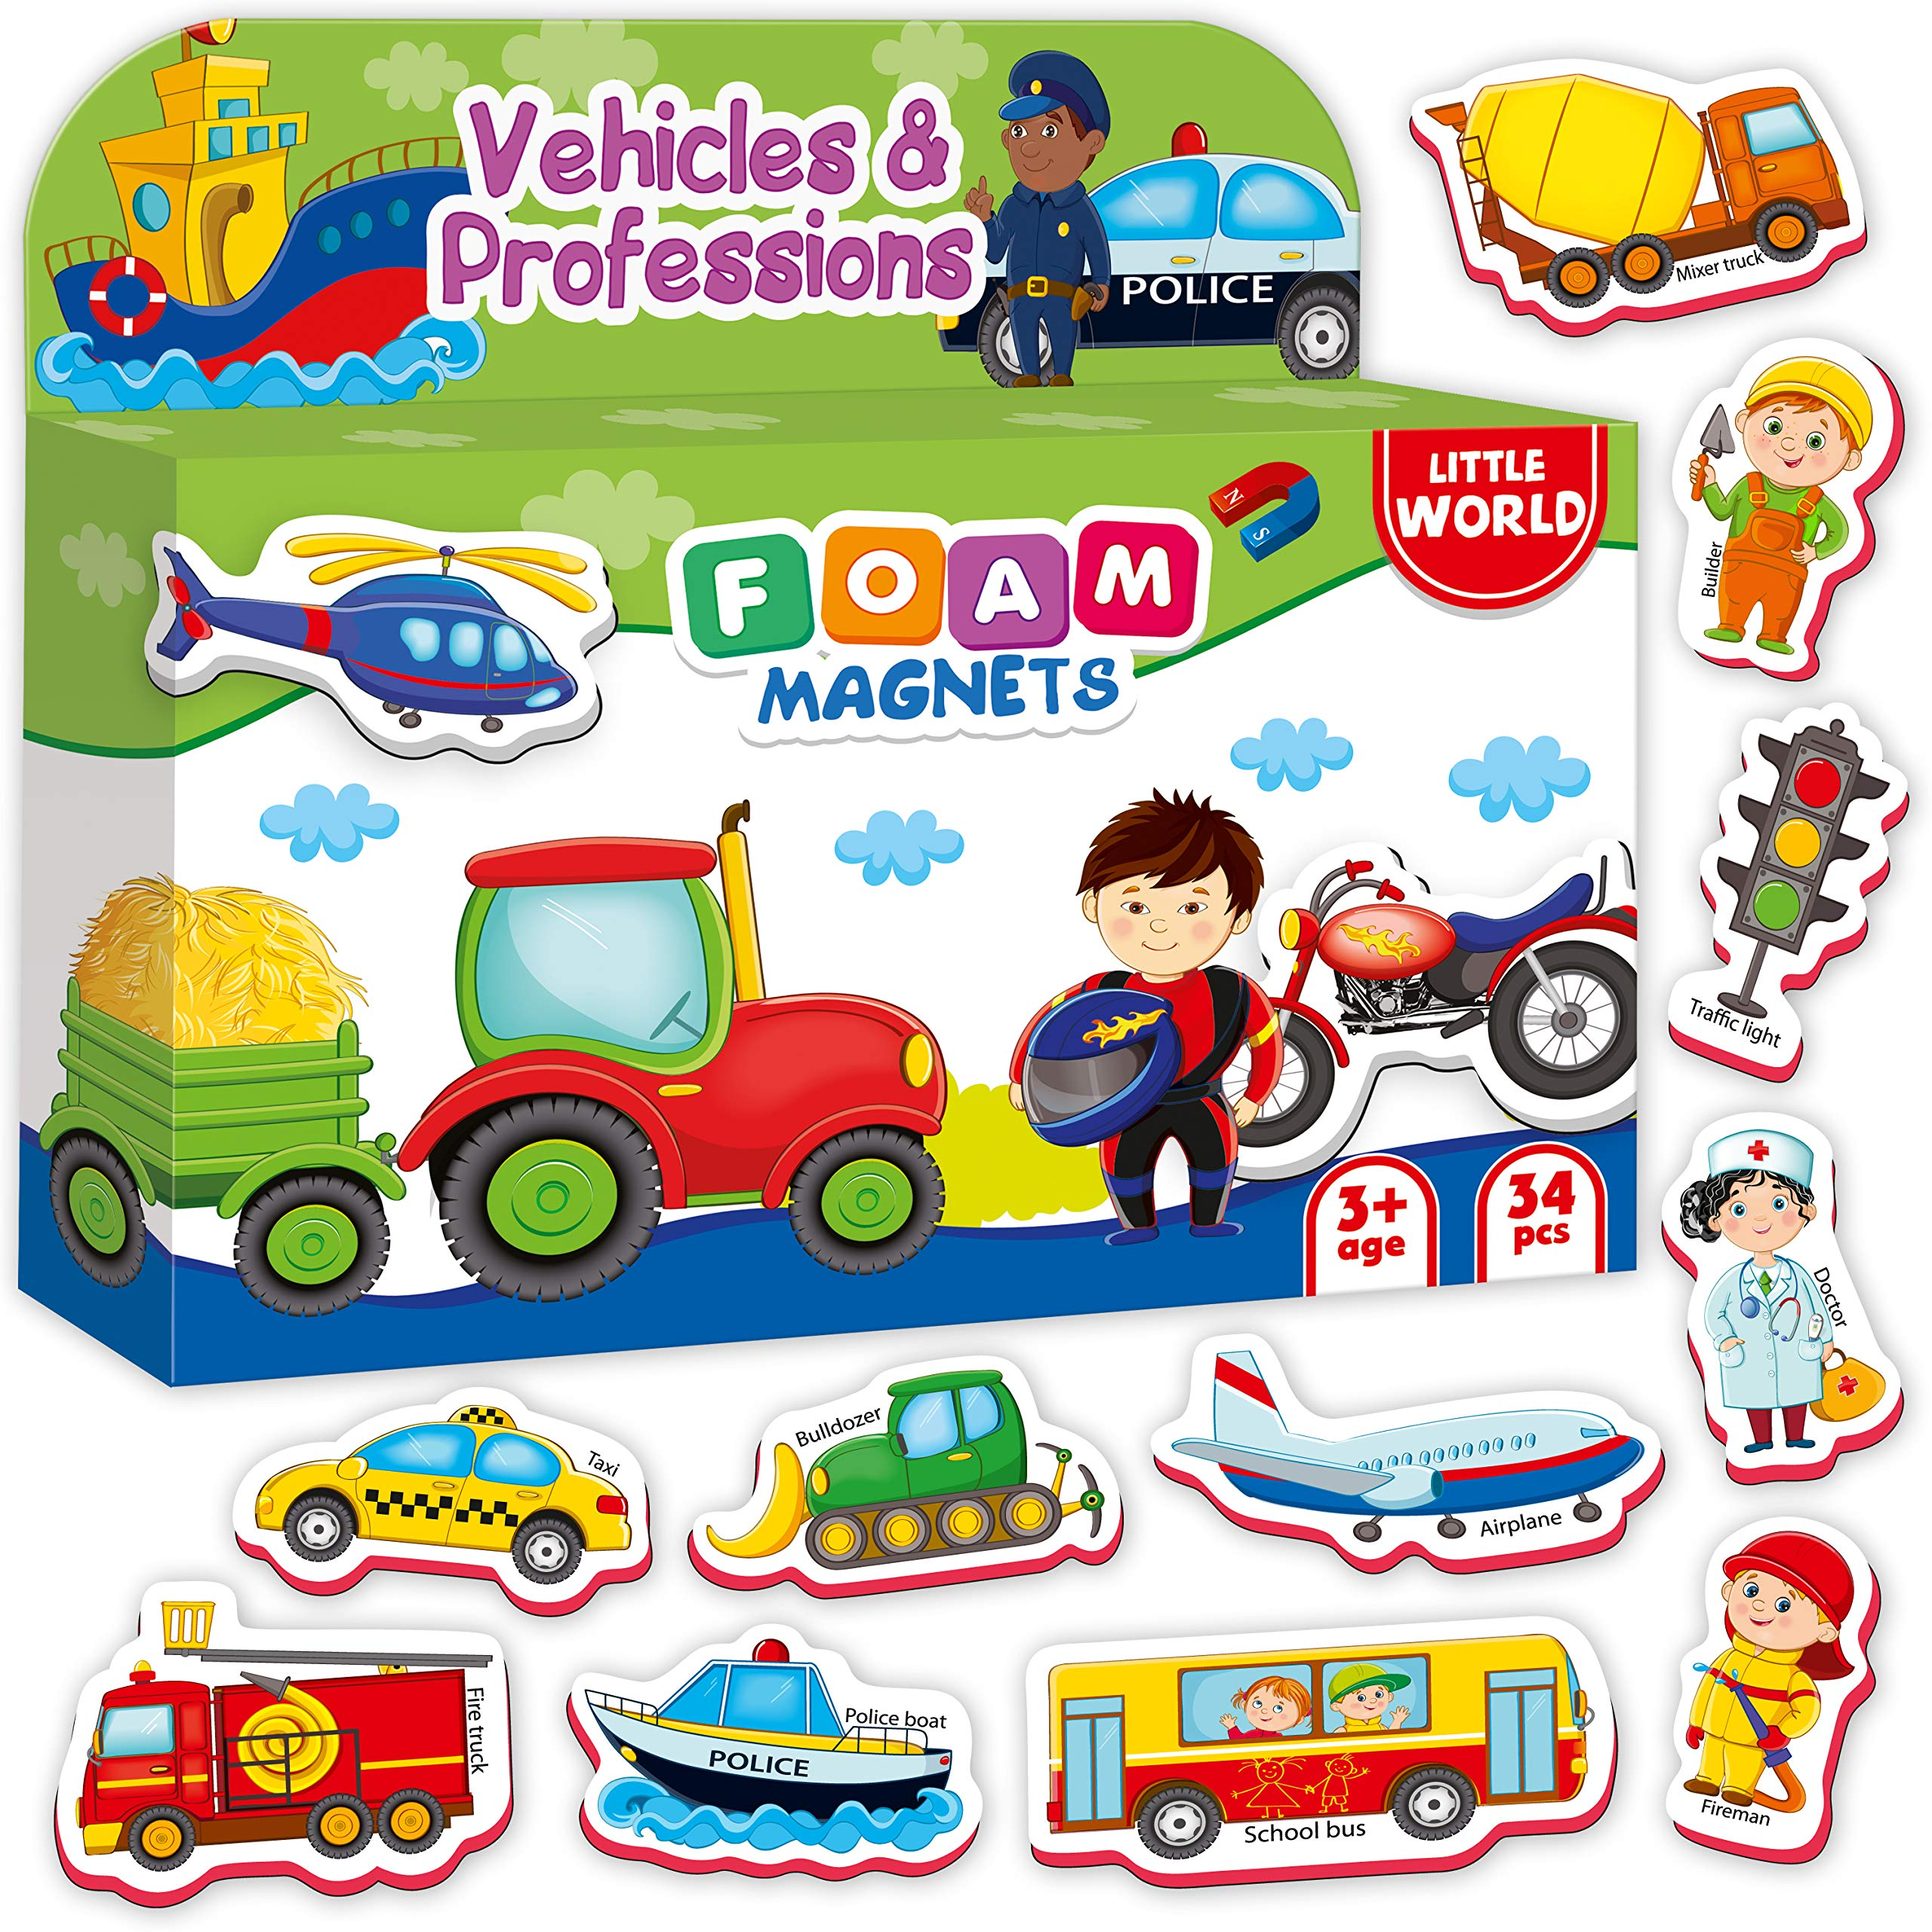 Little World Foam Refrigerator Magnets for Toddlers Age 1 - Fridge Magnets for Kids – Large Baby Magnets – 34 Magnetic Vehicles Trucks Cars for Toddler Learning – Safe Kids Magnets for 2 3 Year Old